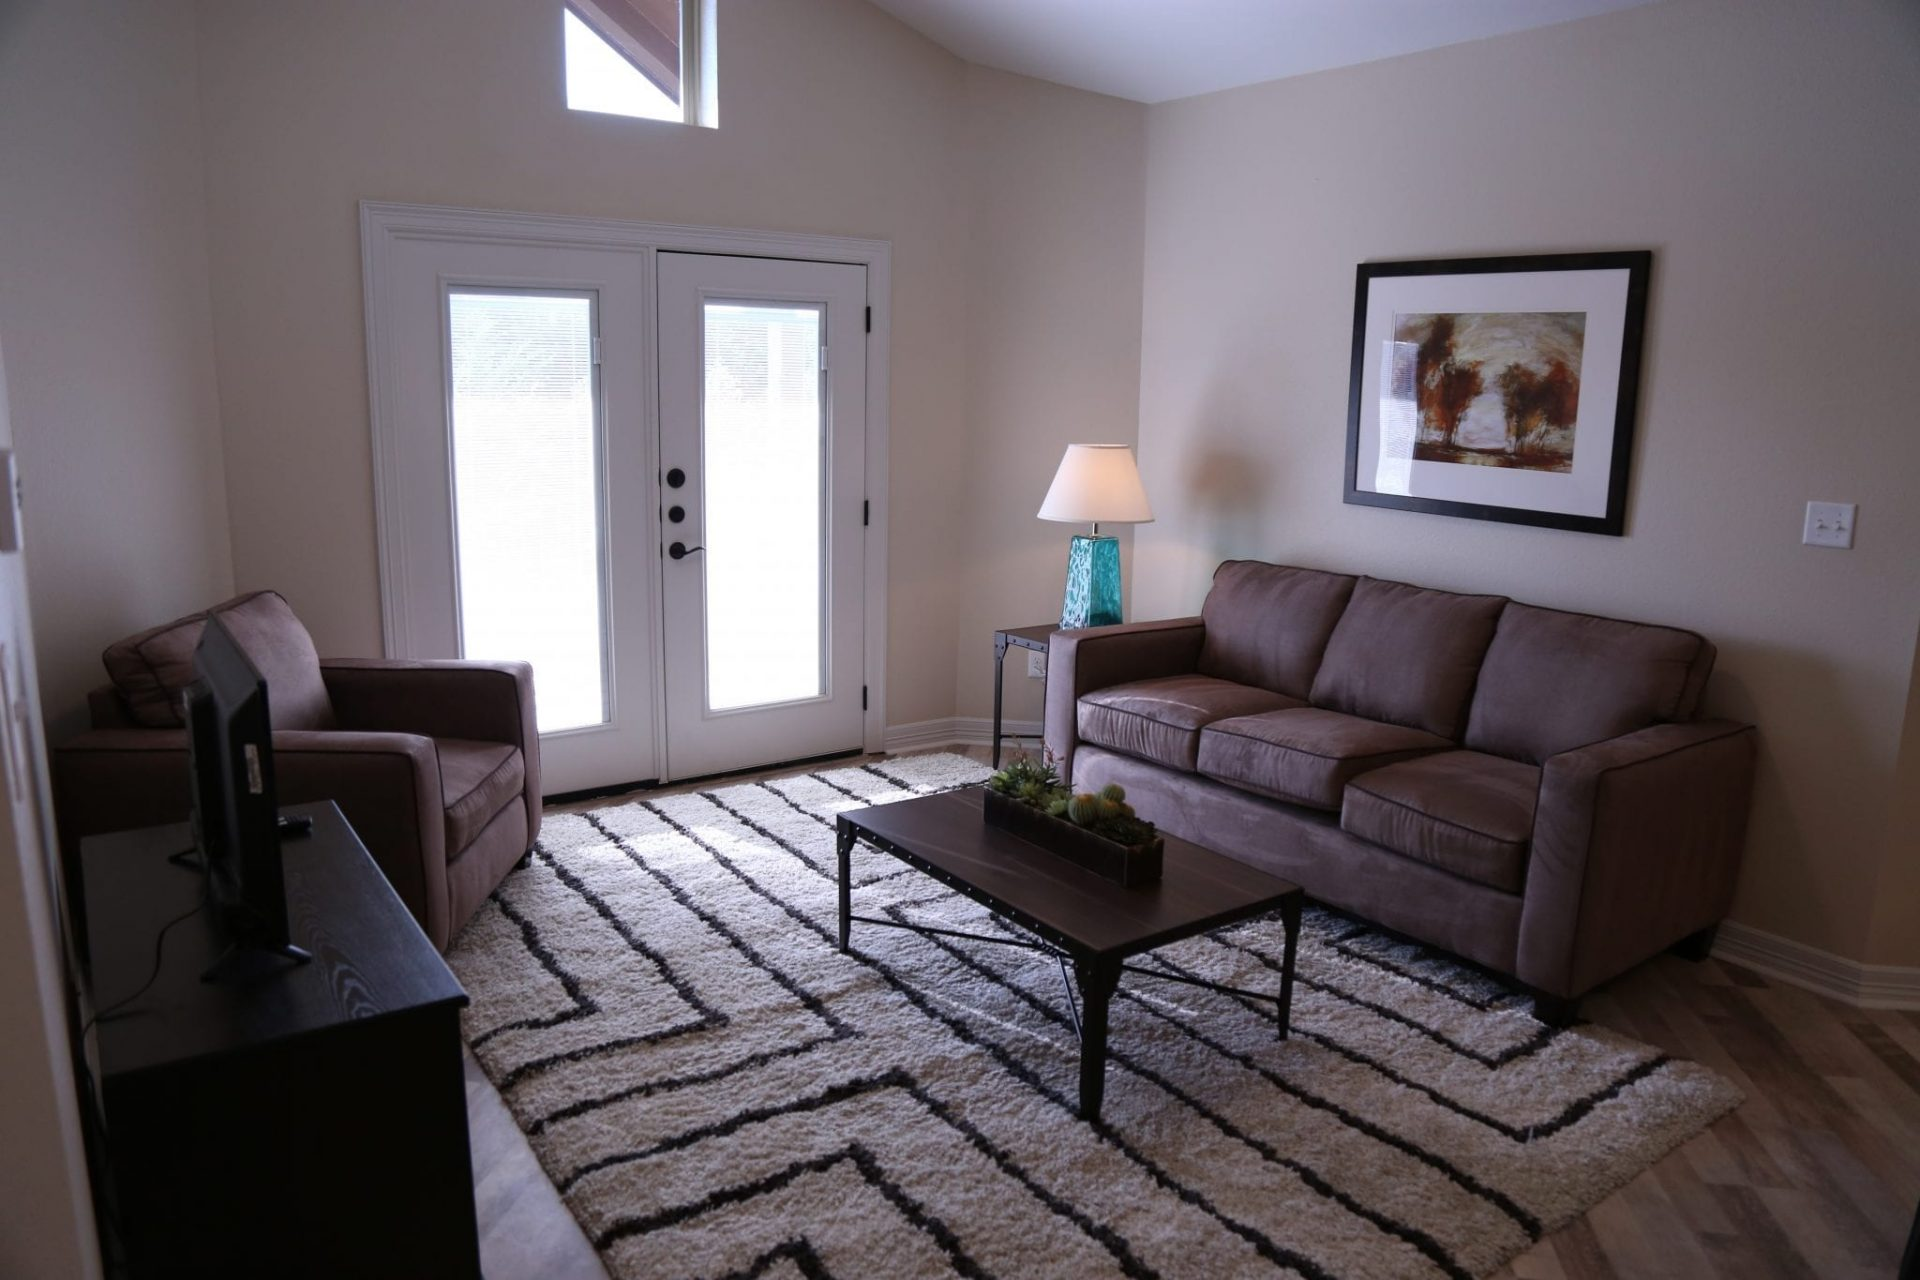 Best New Apartments for Lease in Aggieland